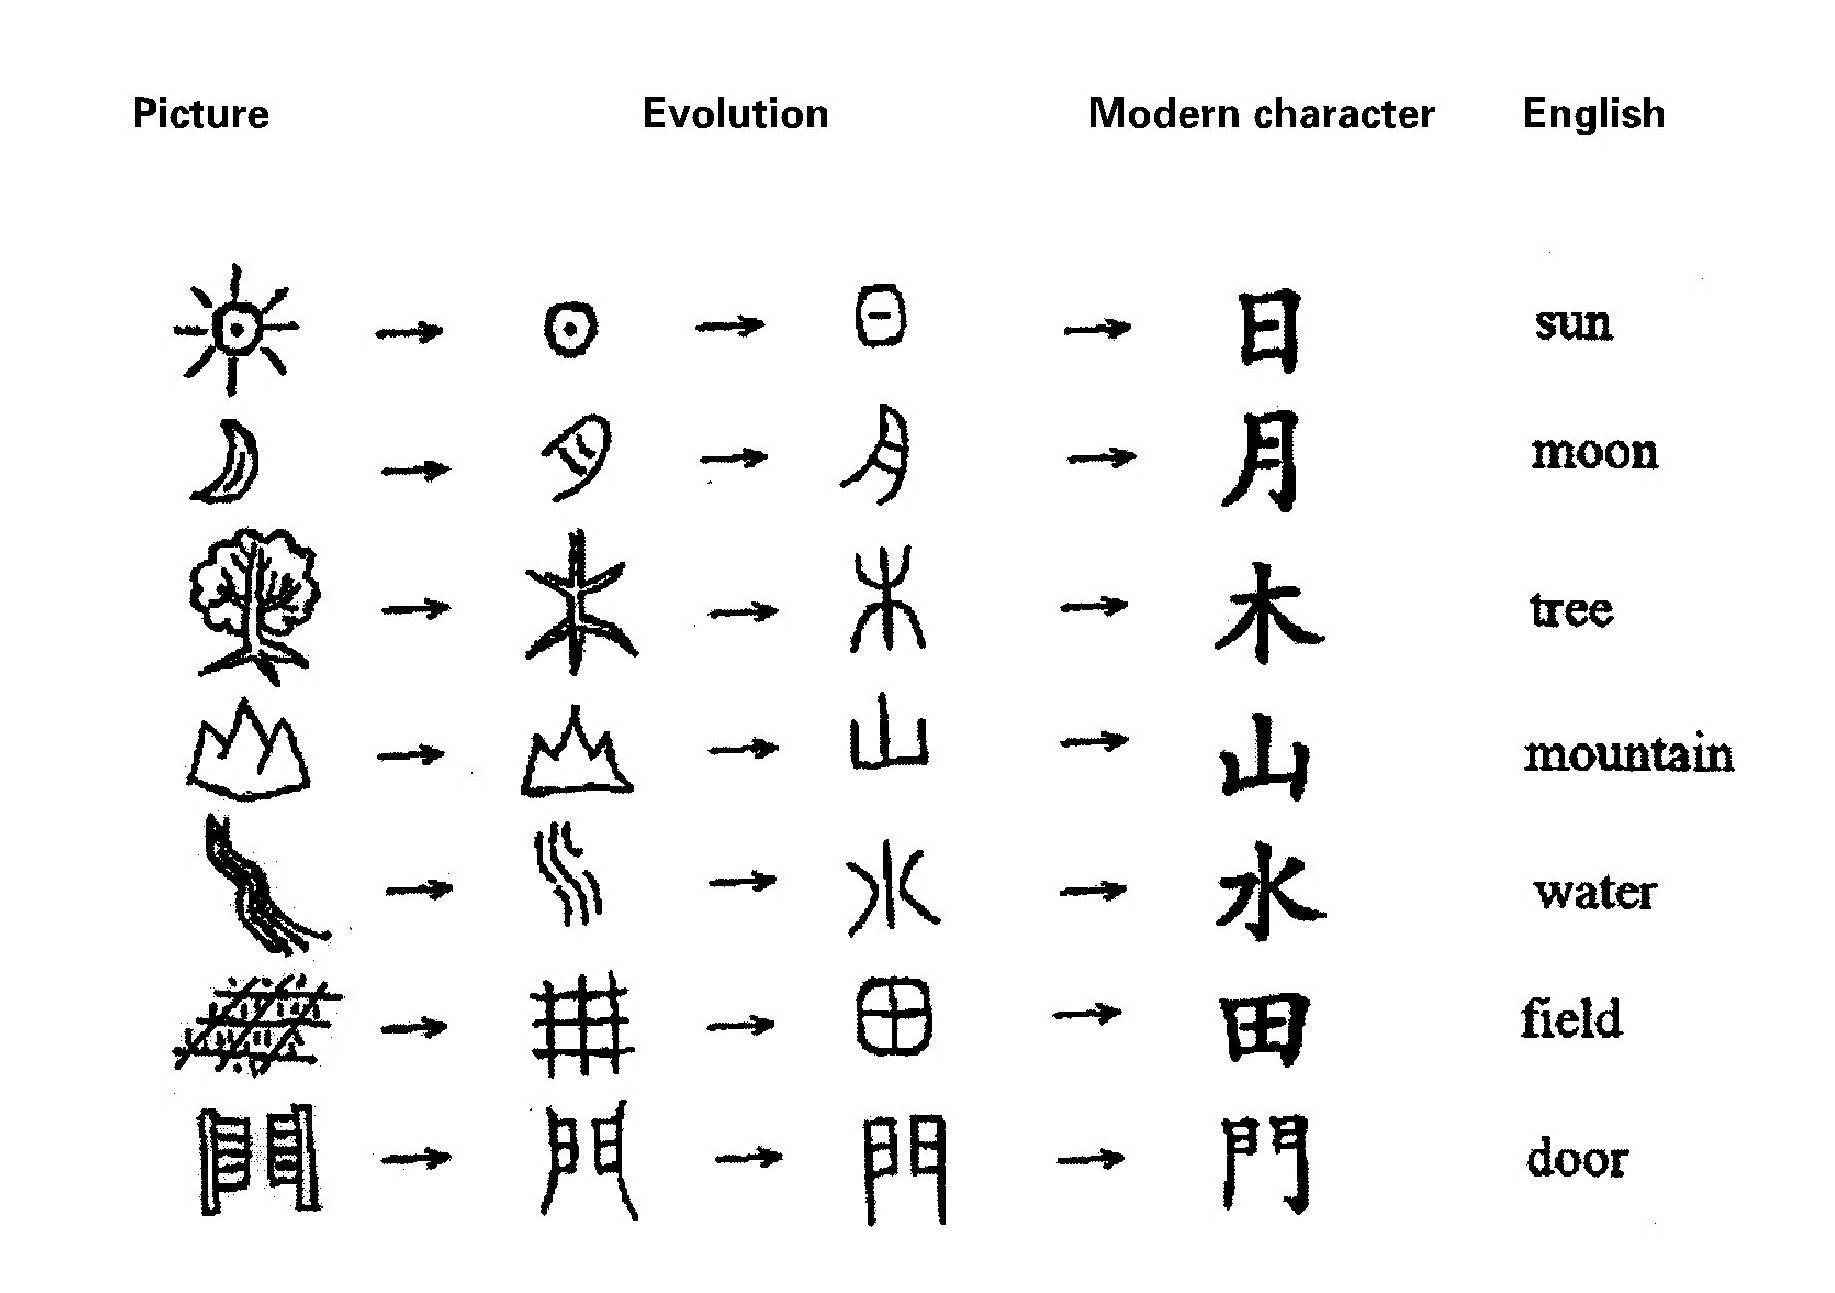 The Chinese language has evolved over more than three millennia.